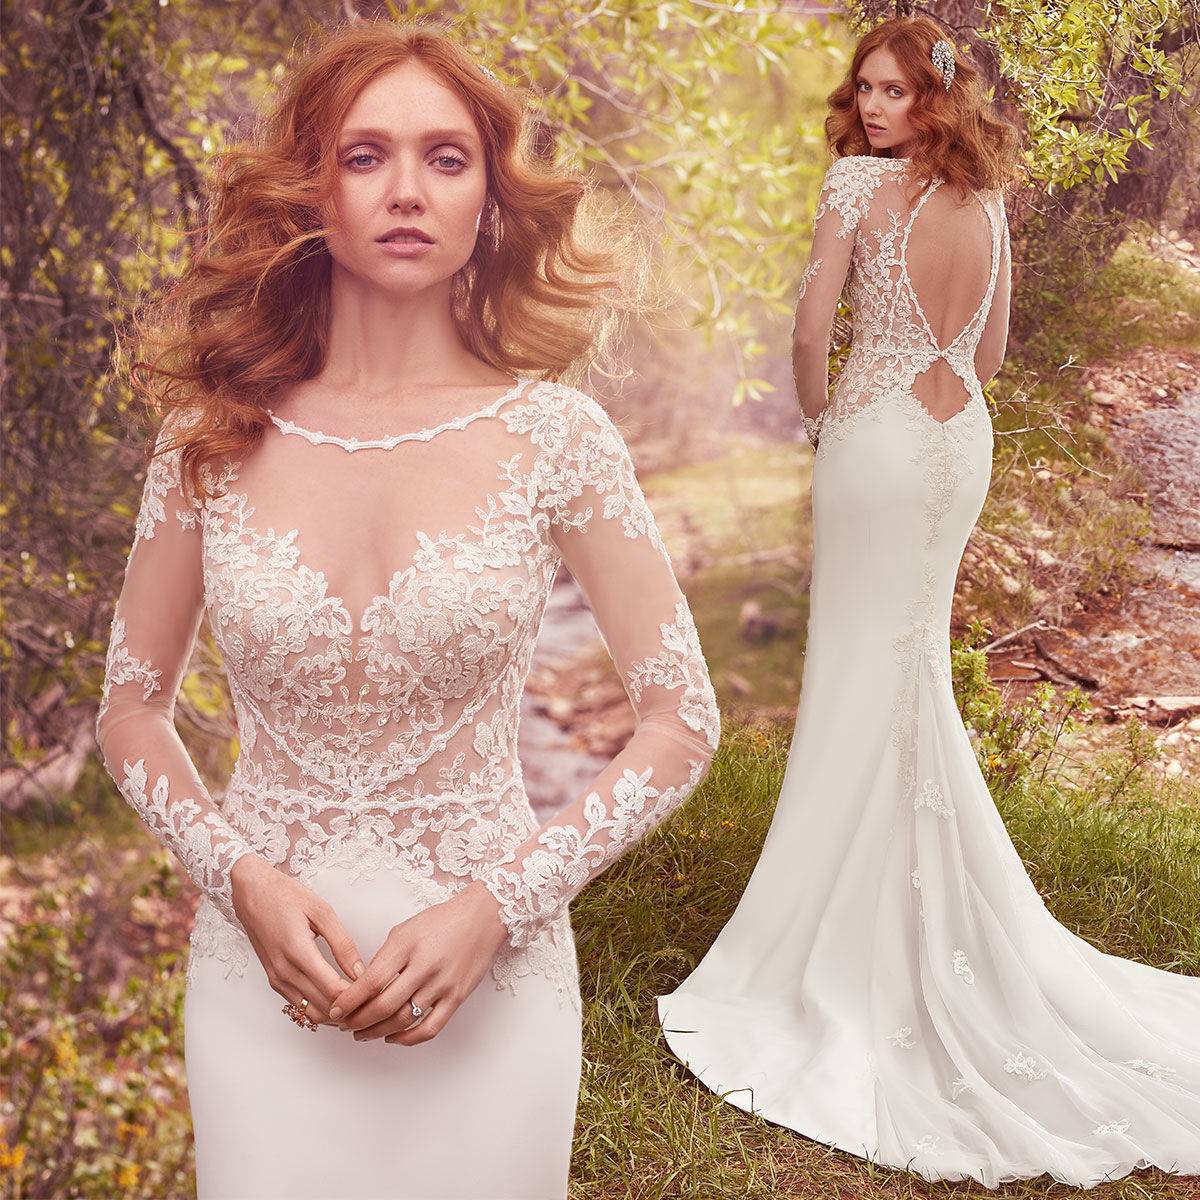 Inland empire wedding dresses reviews for 51 dresses smitten bridal ombrellifo Images